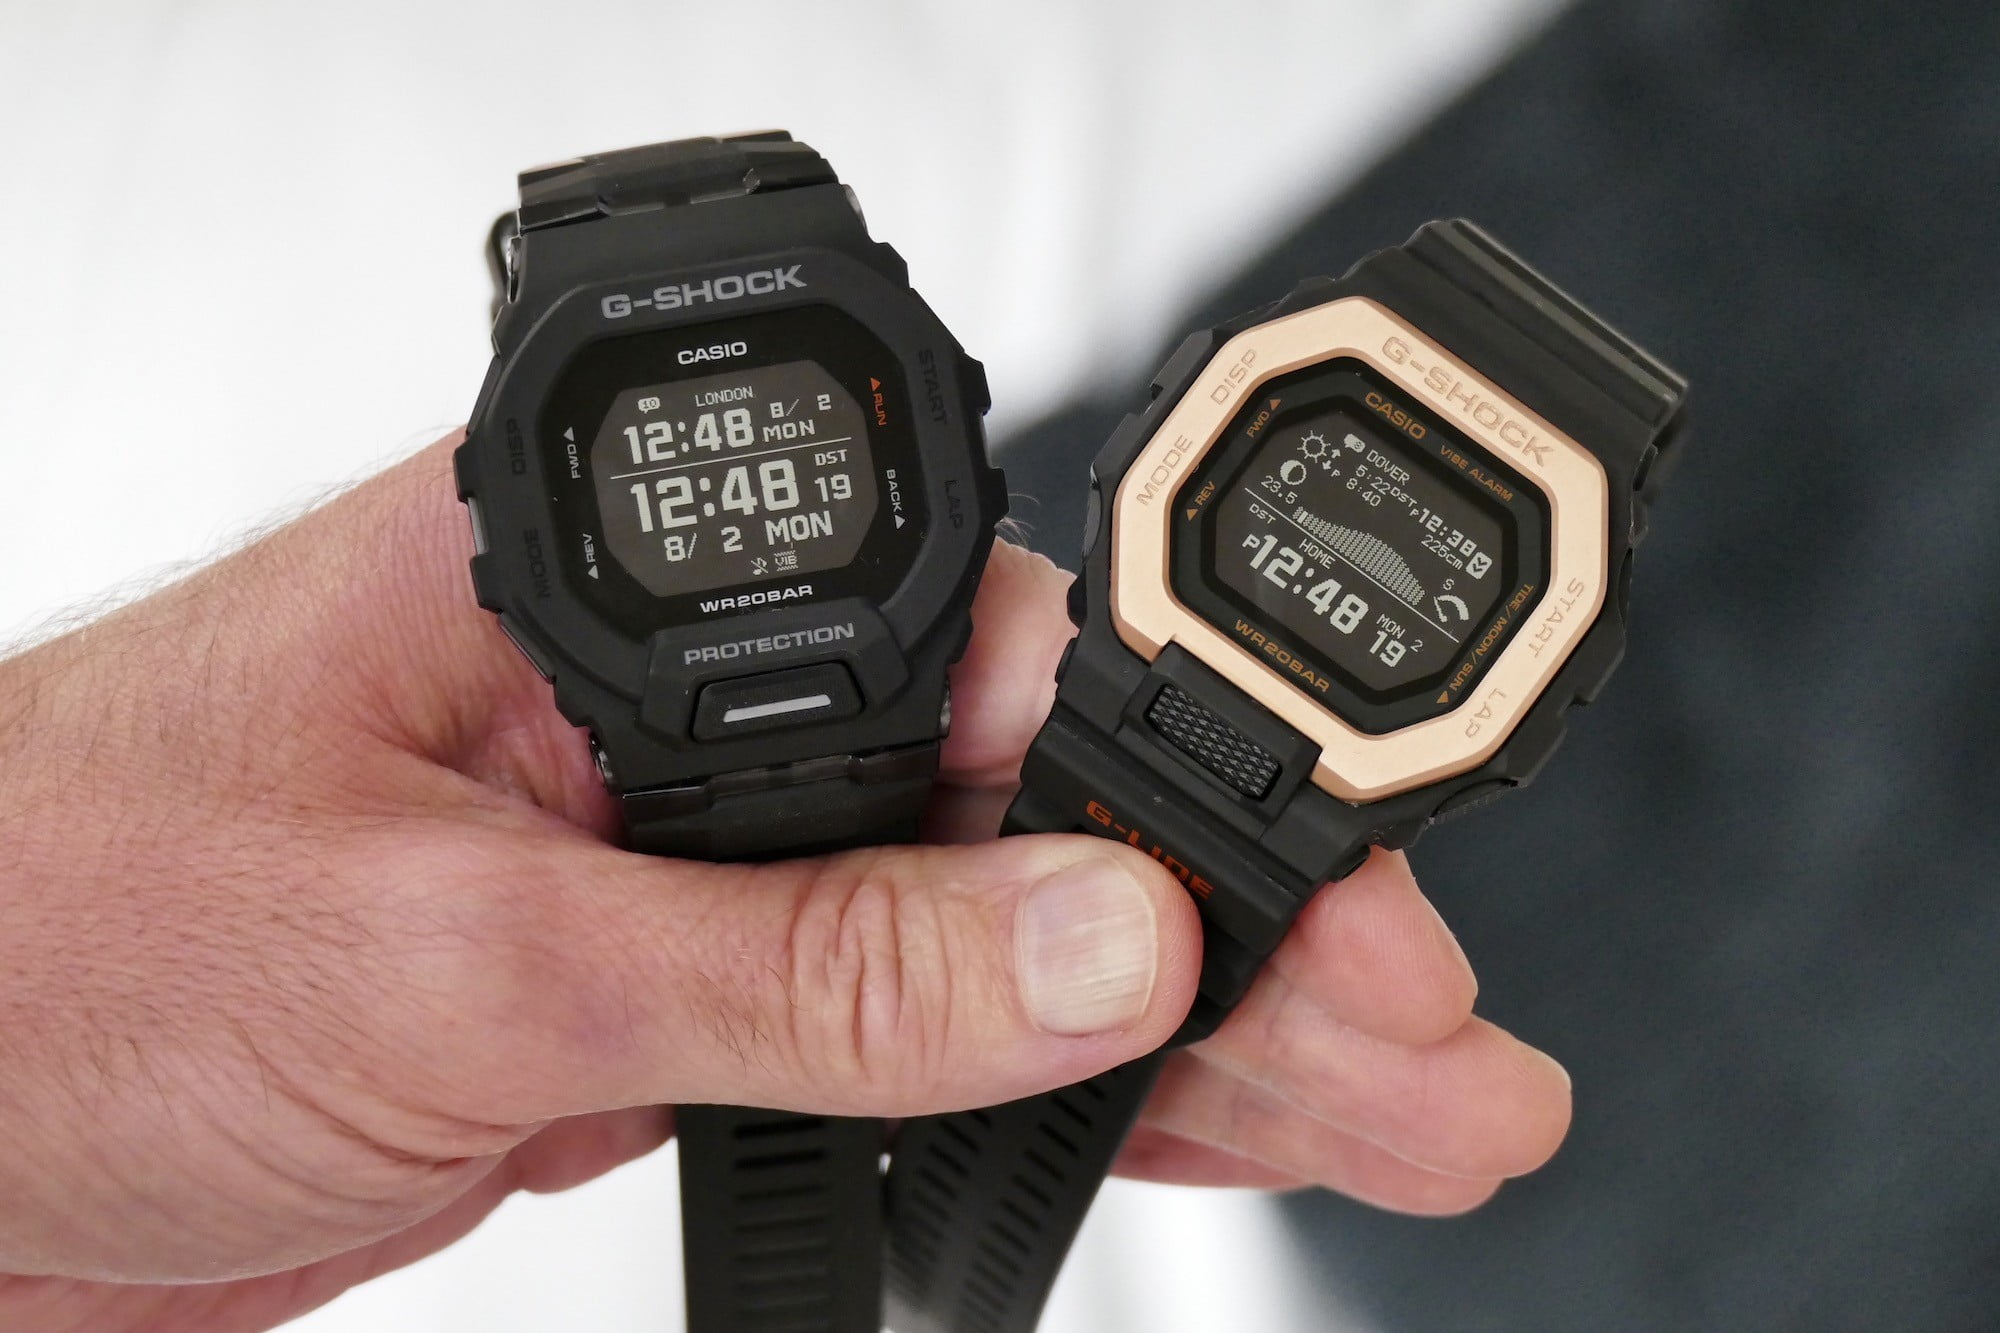 The G Shock GBX-100NS and GBD-100 side-by-side.